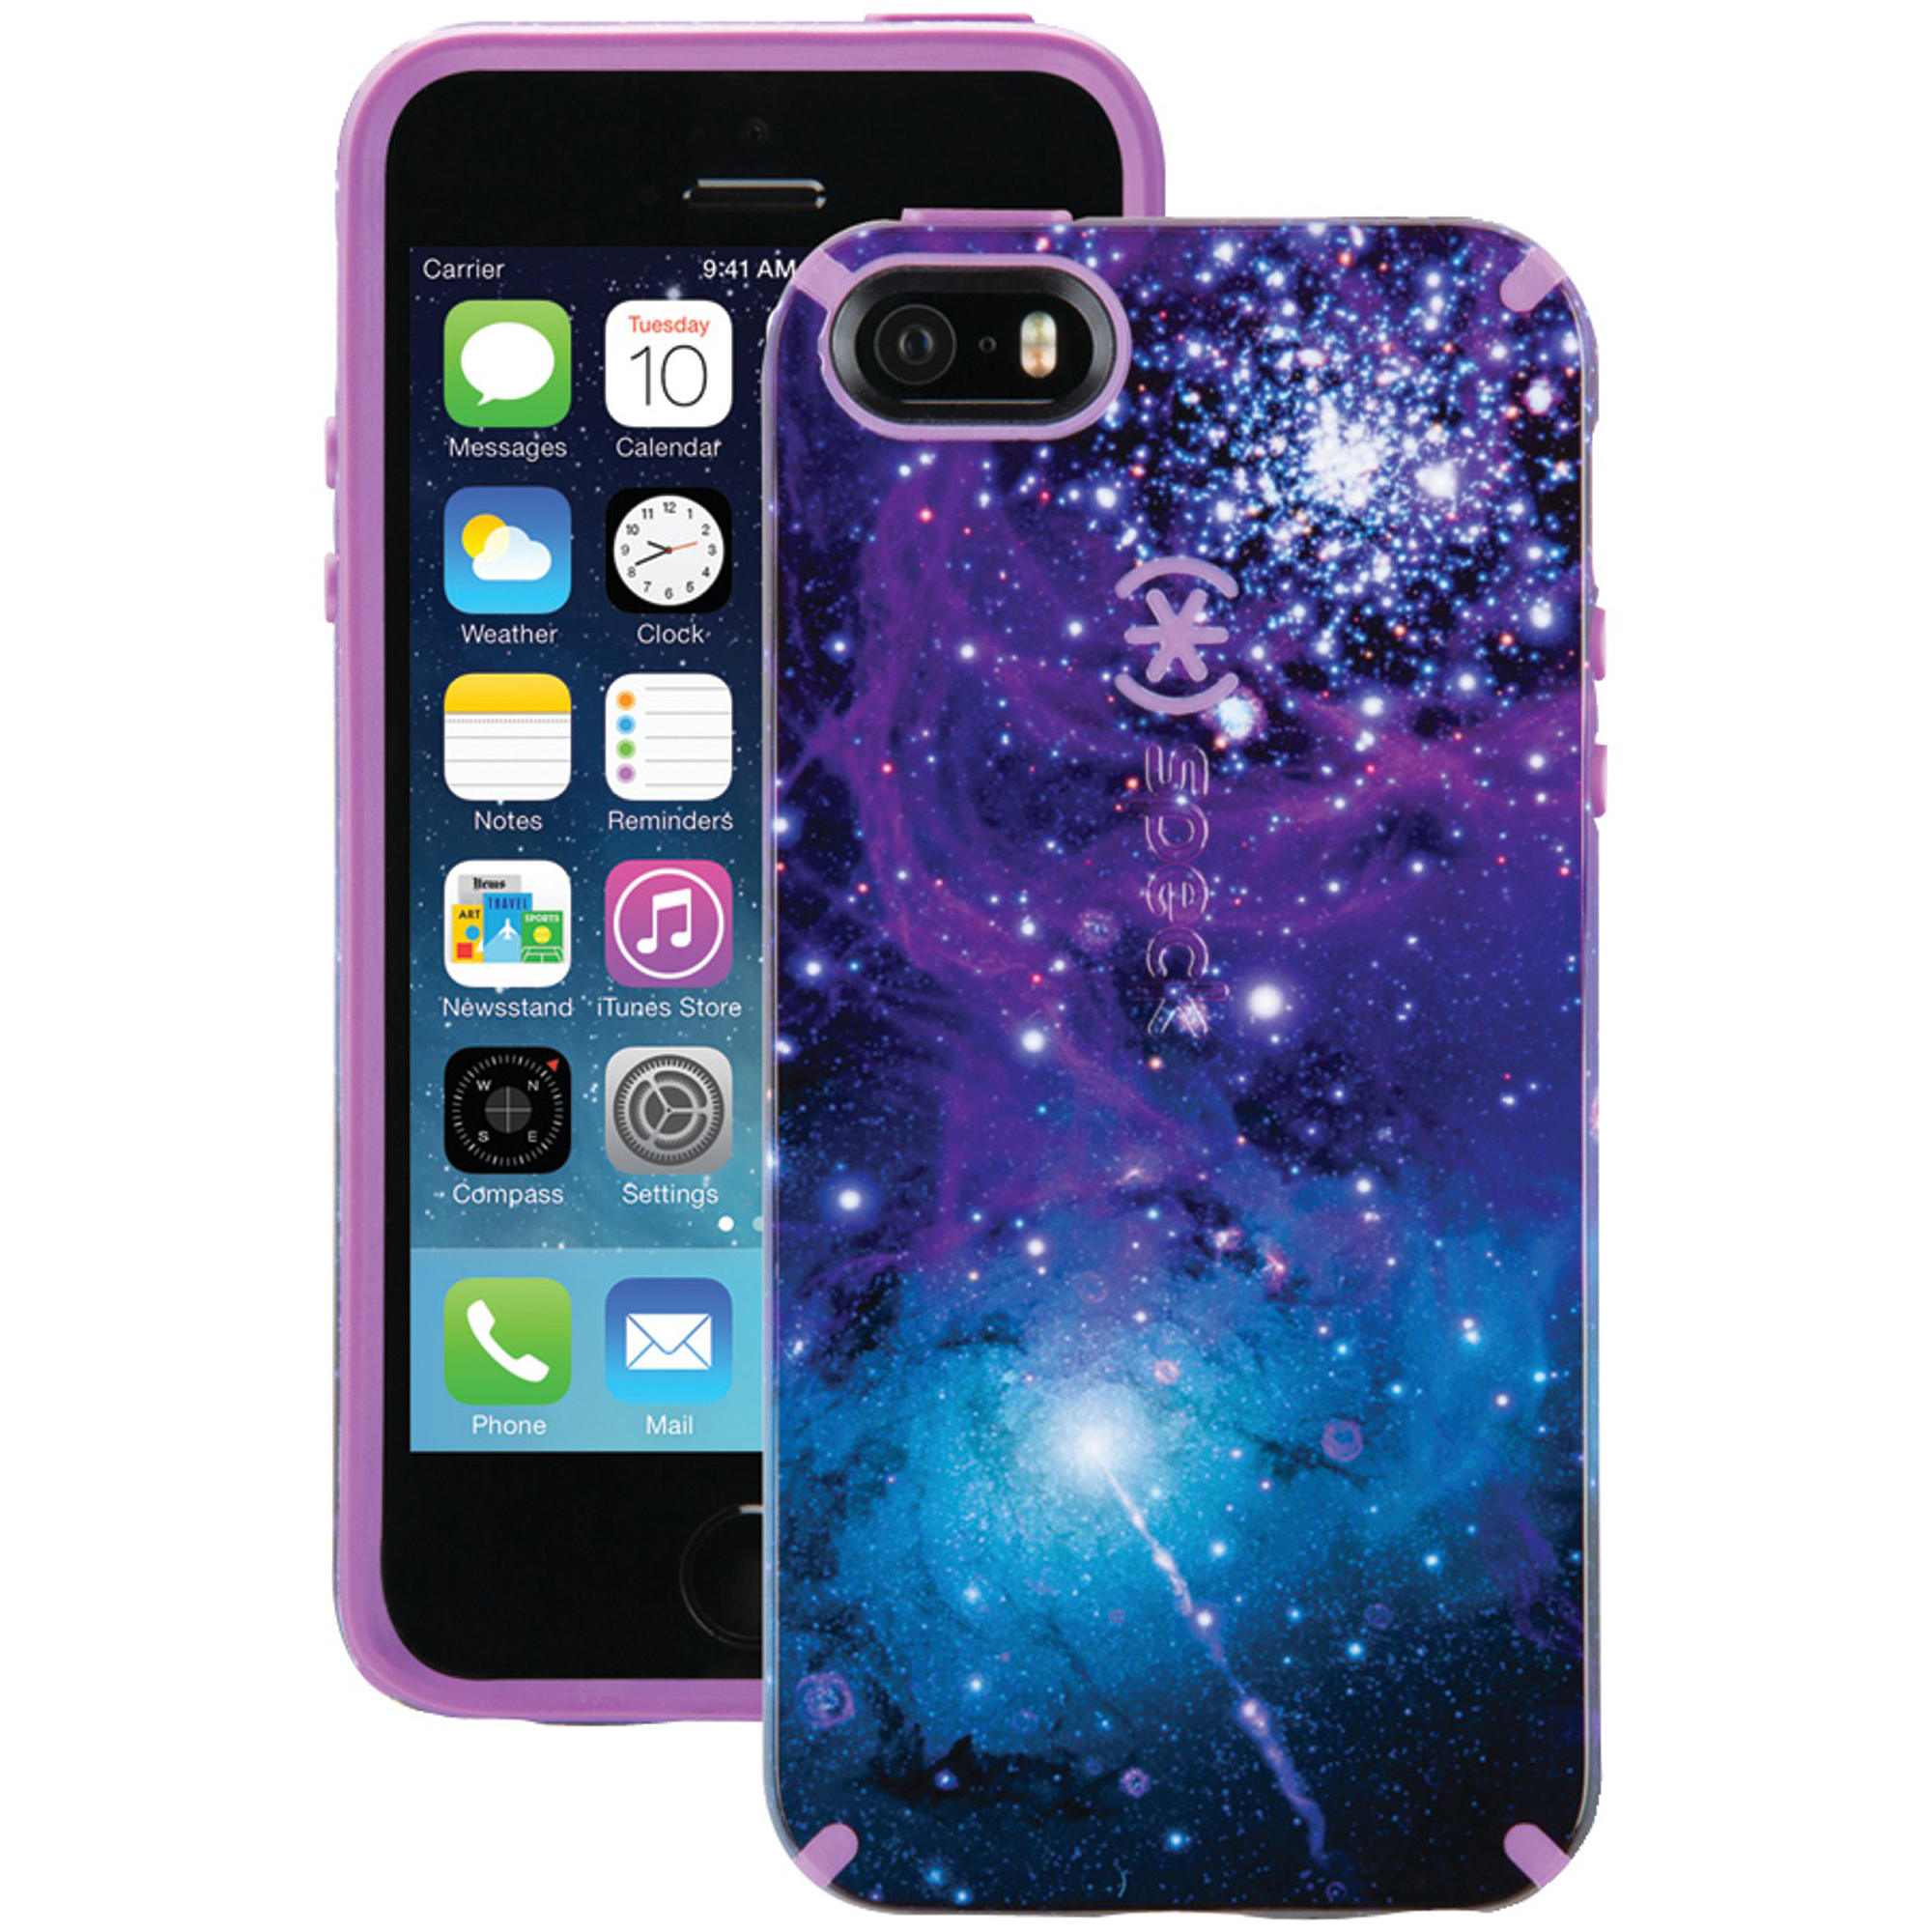 iPhone 5/5SE/5S Speck apple iphone candyshell inked case, galaxy/revolution